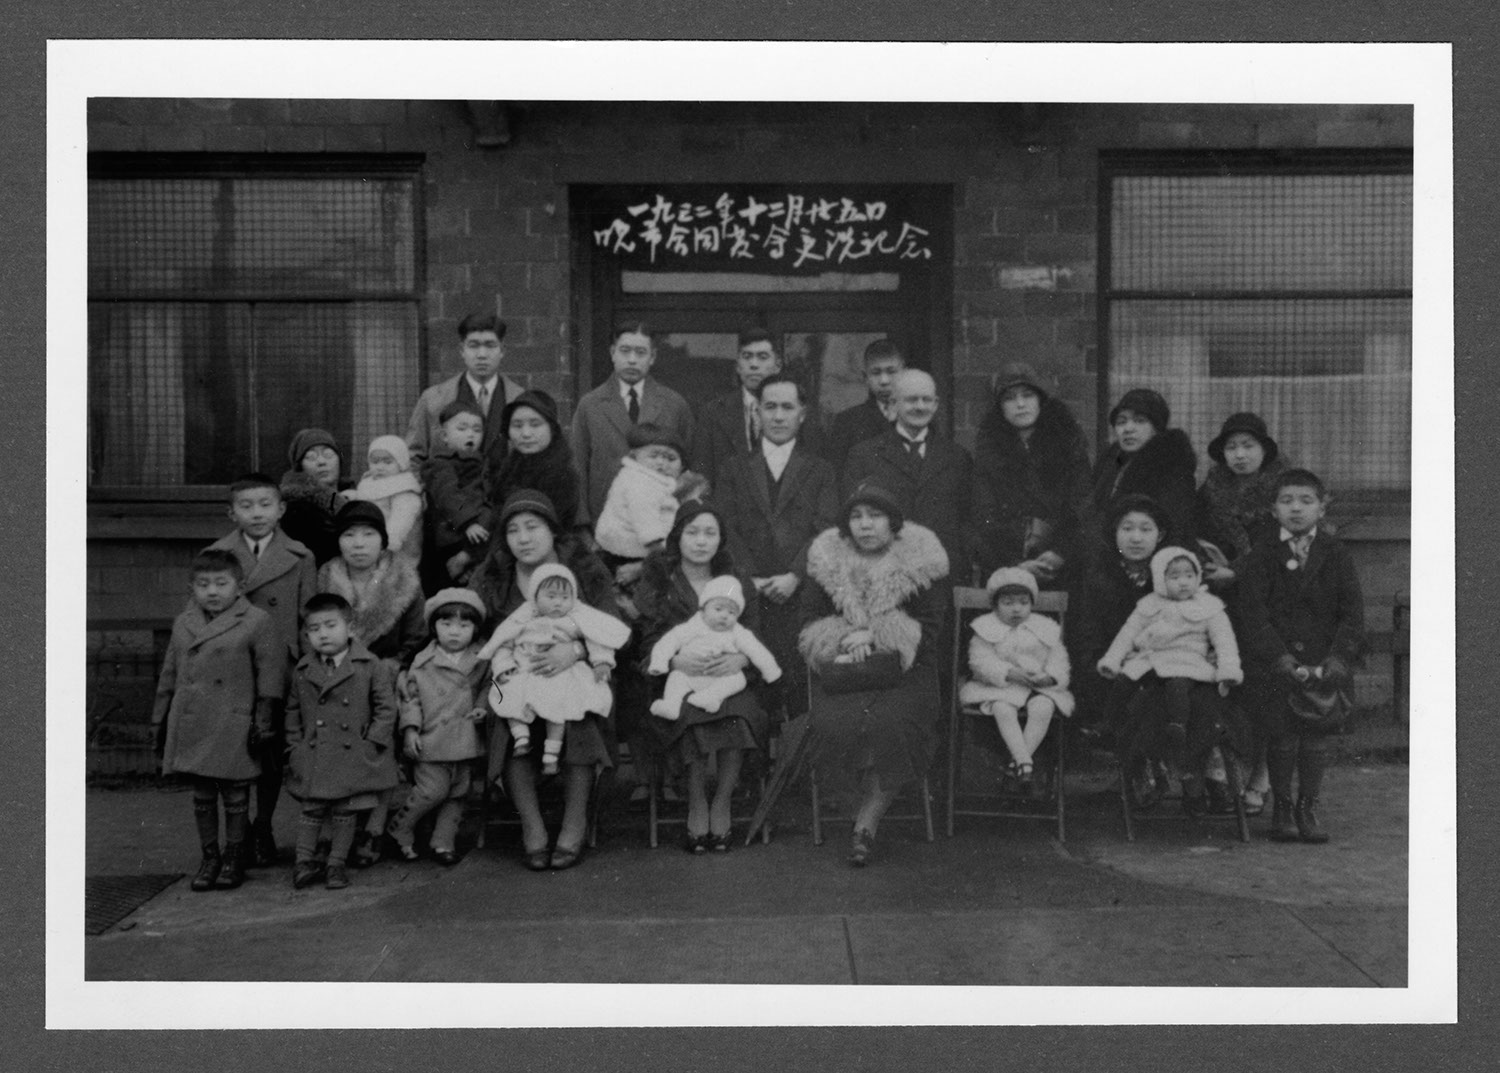 Group portrait in front of Powell Street gymnasium